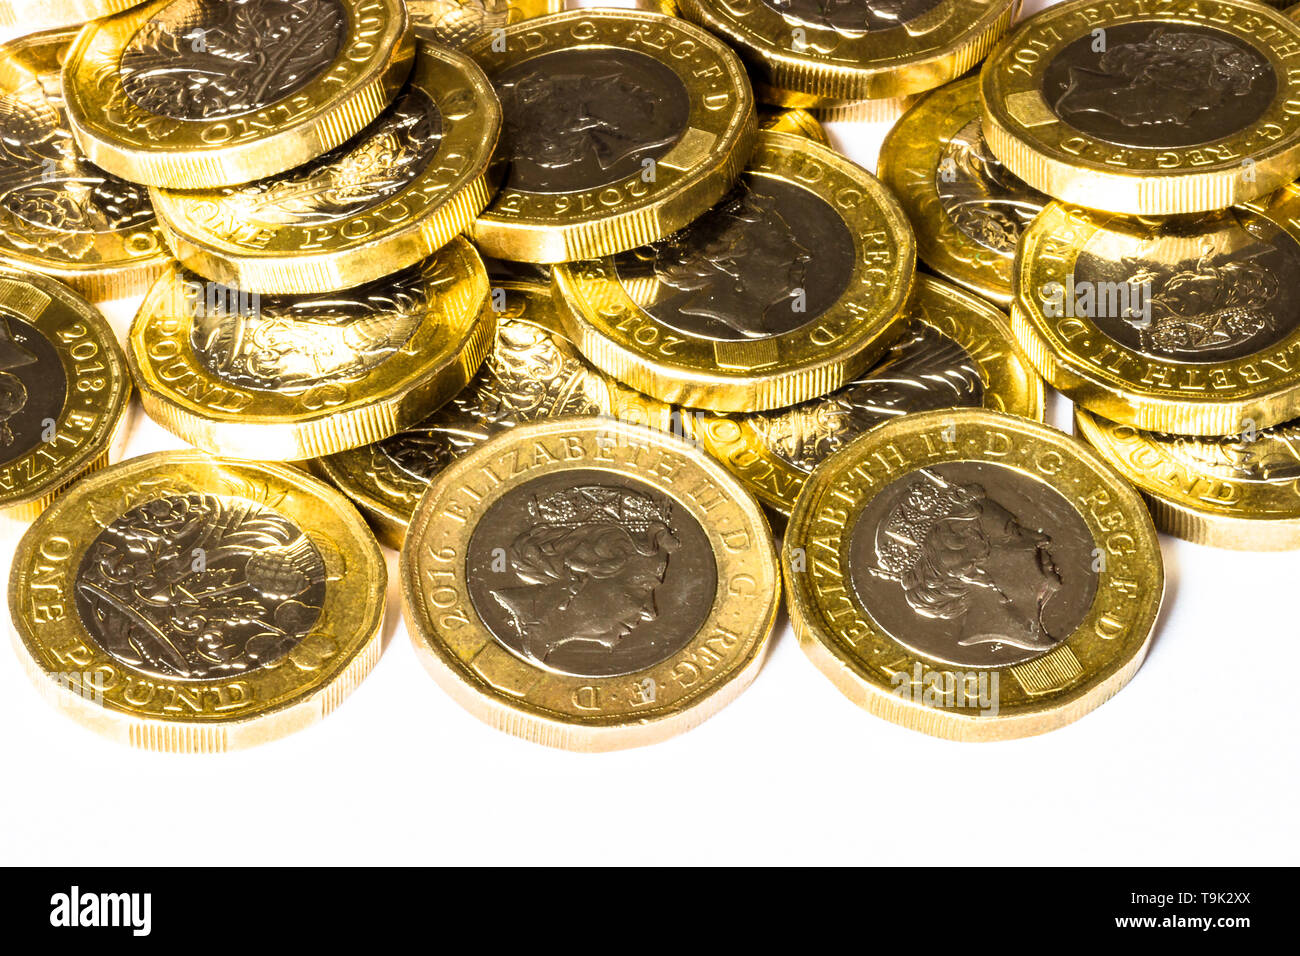 Loose pound coins - Stock Image